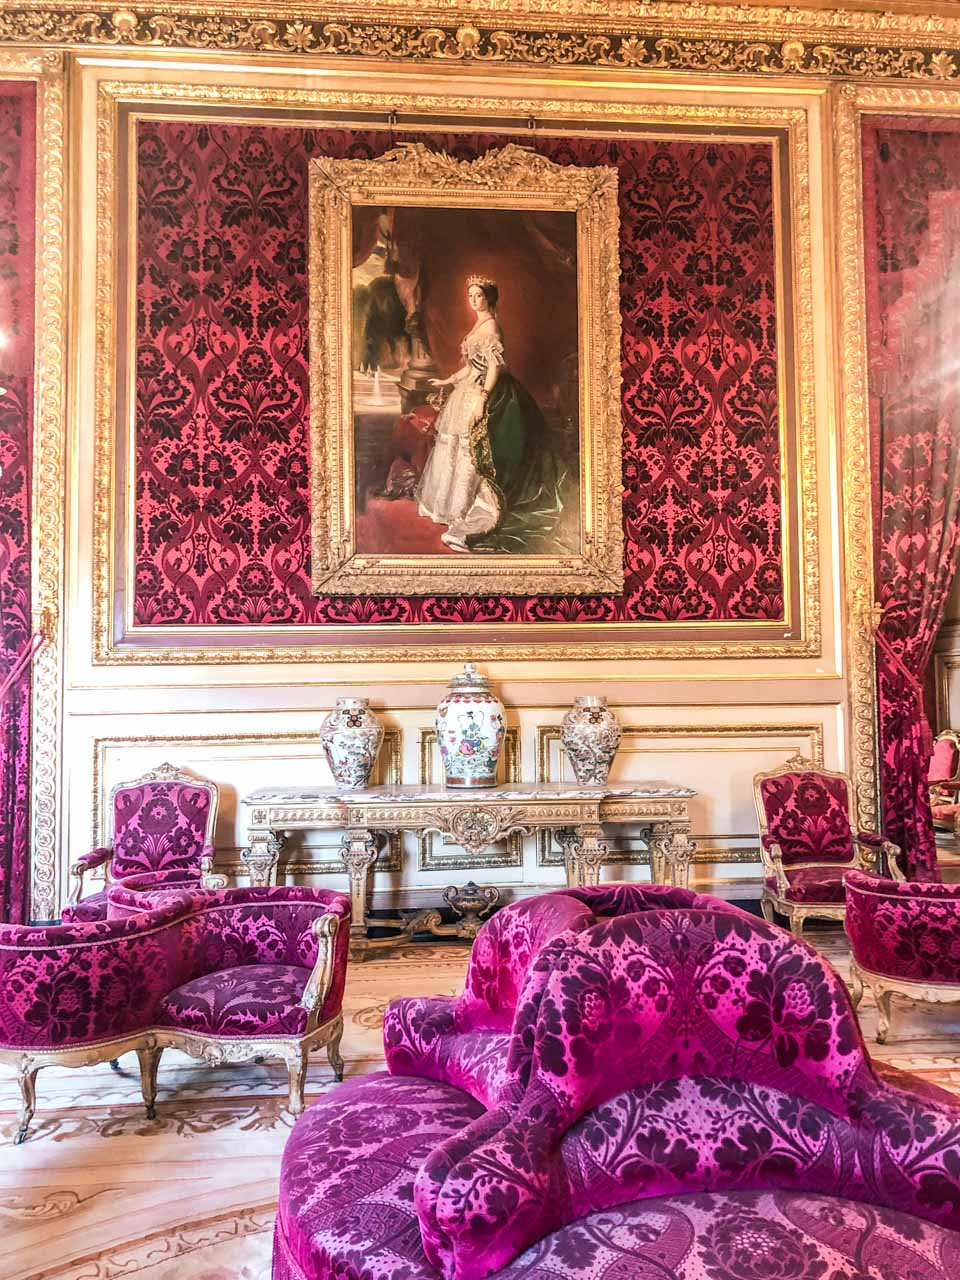 A portrait of Empress Eugenie hanging on the wall inside a room filled with velvet fixtures, gold edgings, red upholstered royal furniture and decorative vases in the Napoleon III Apartments located in the Richelieu Wing in the Louvre Museum in Paris, France